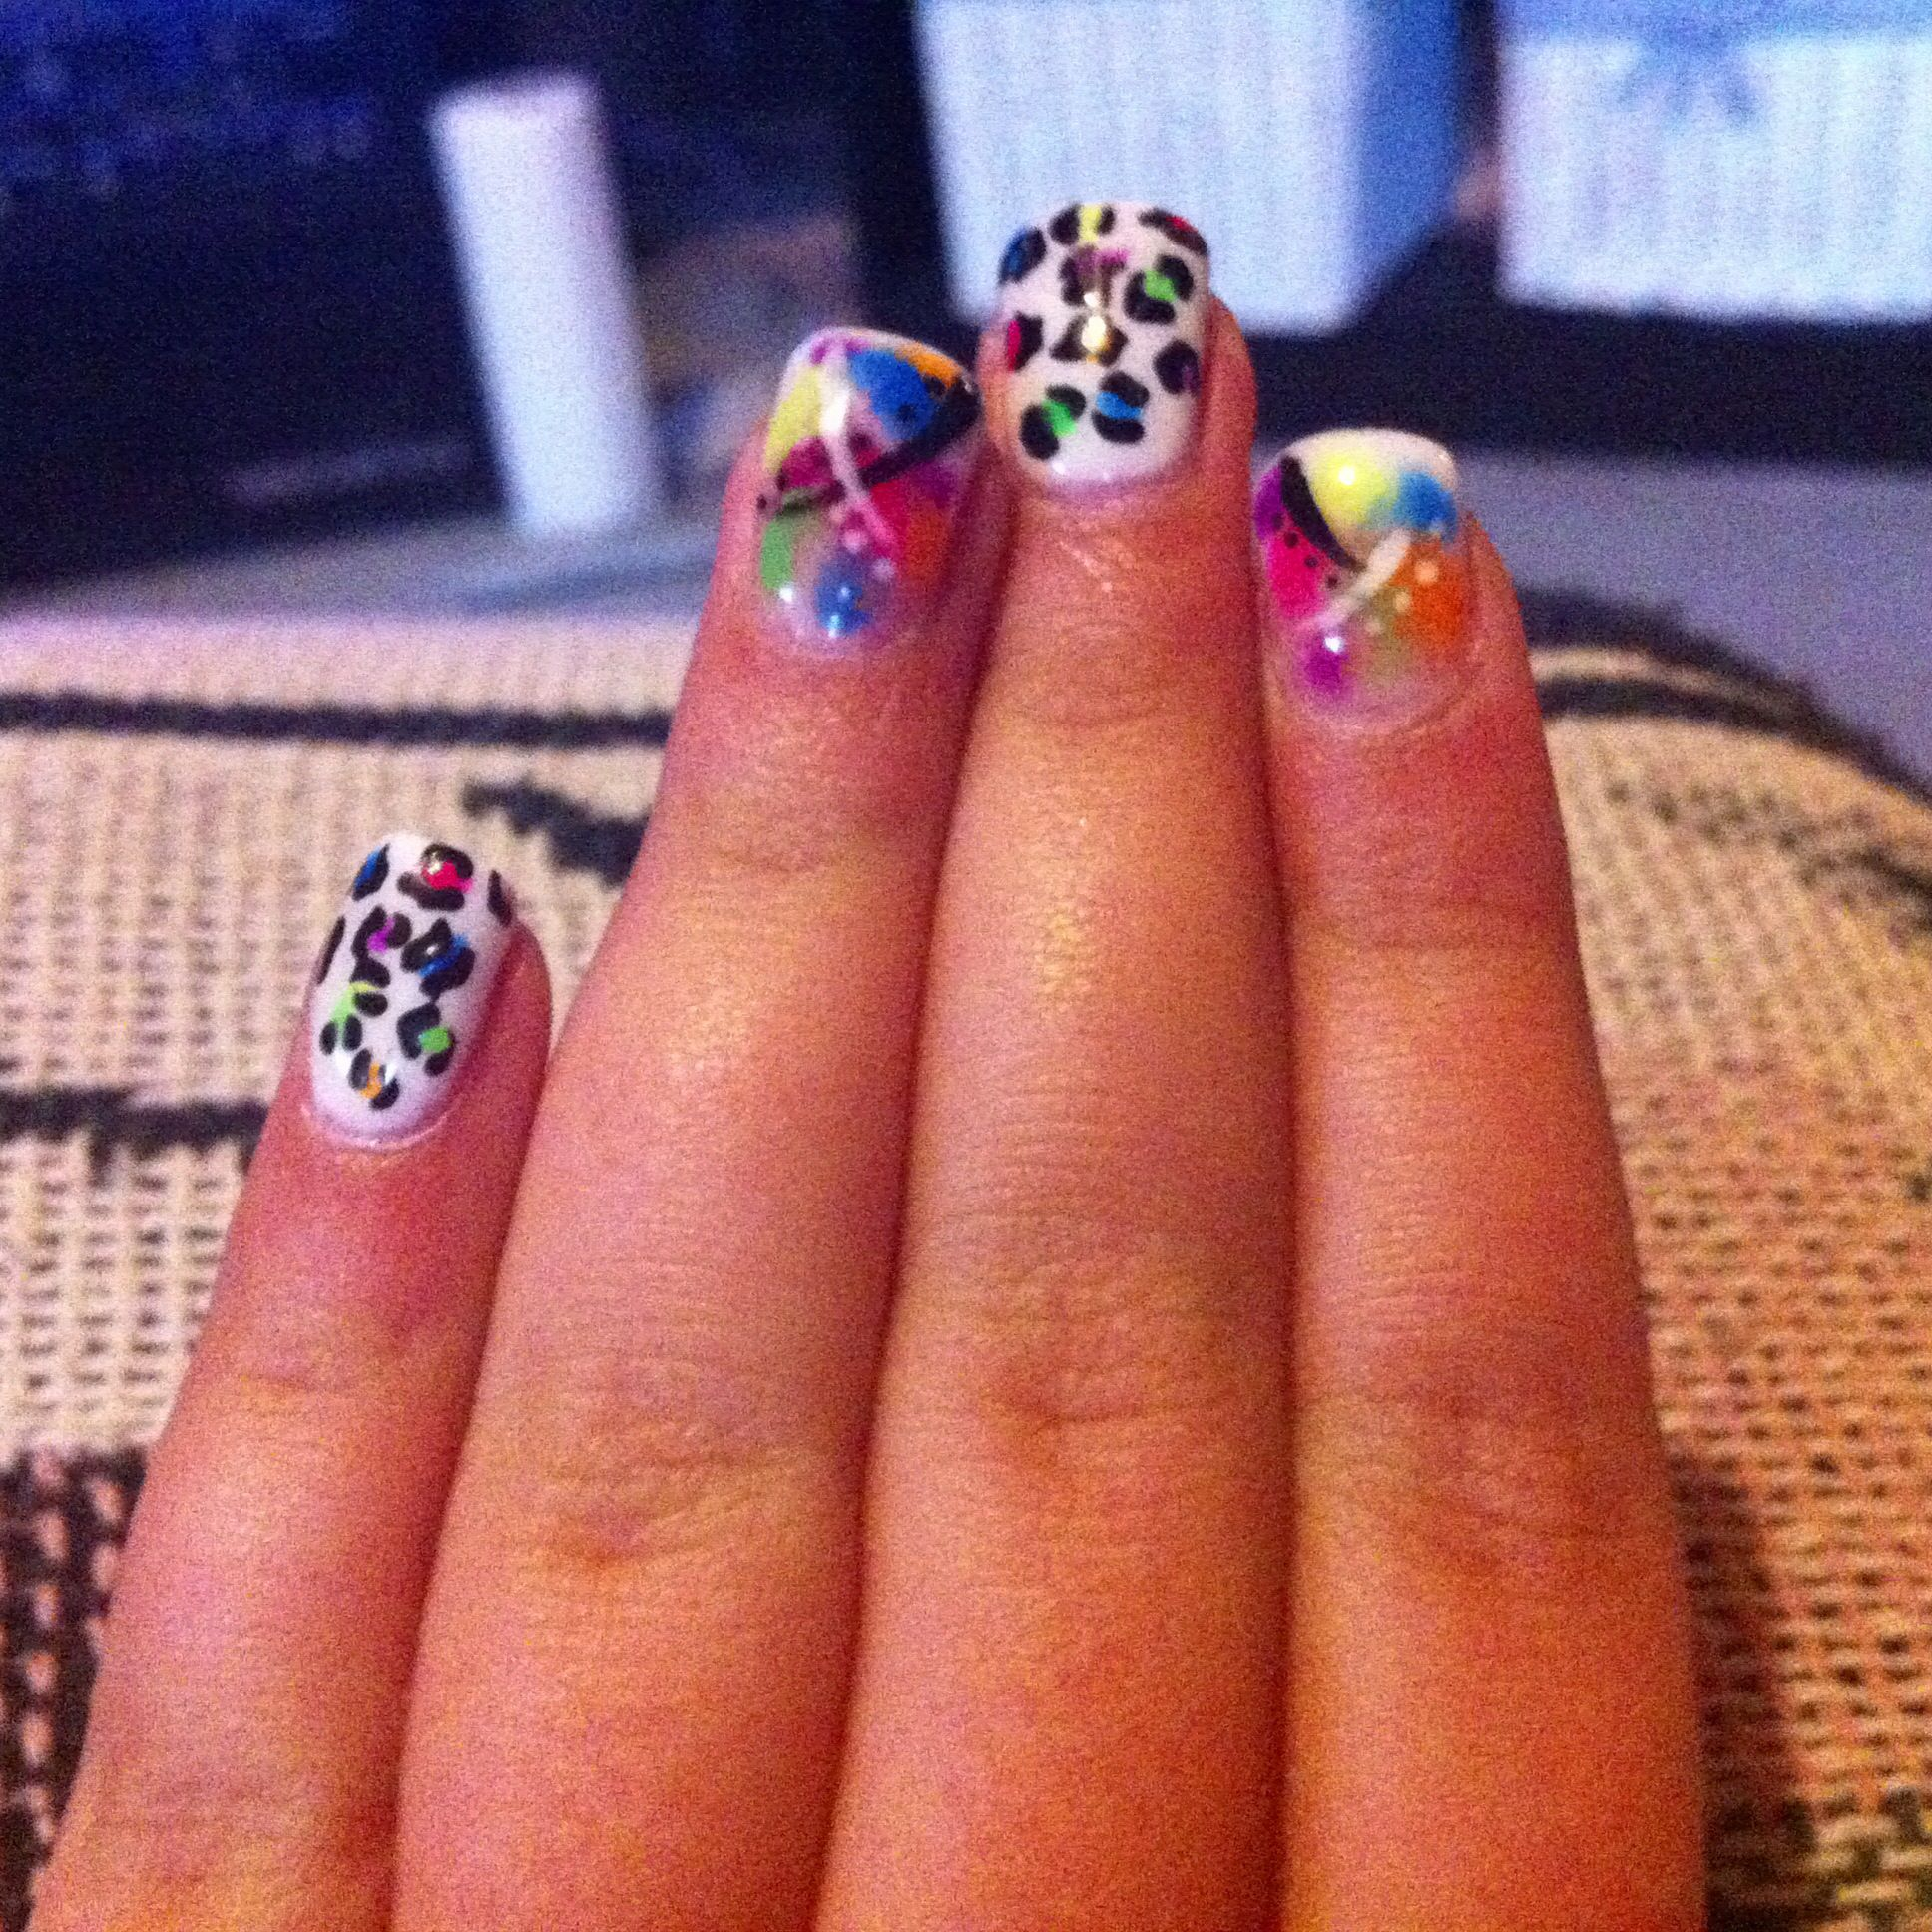 Got my nails done by shayna at evolve studio look at their page on Facebook amazing work:)